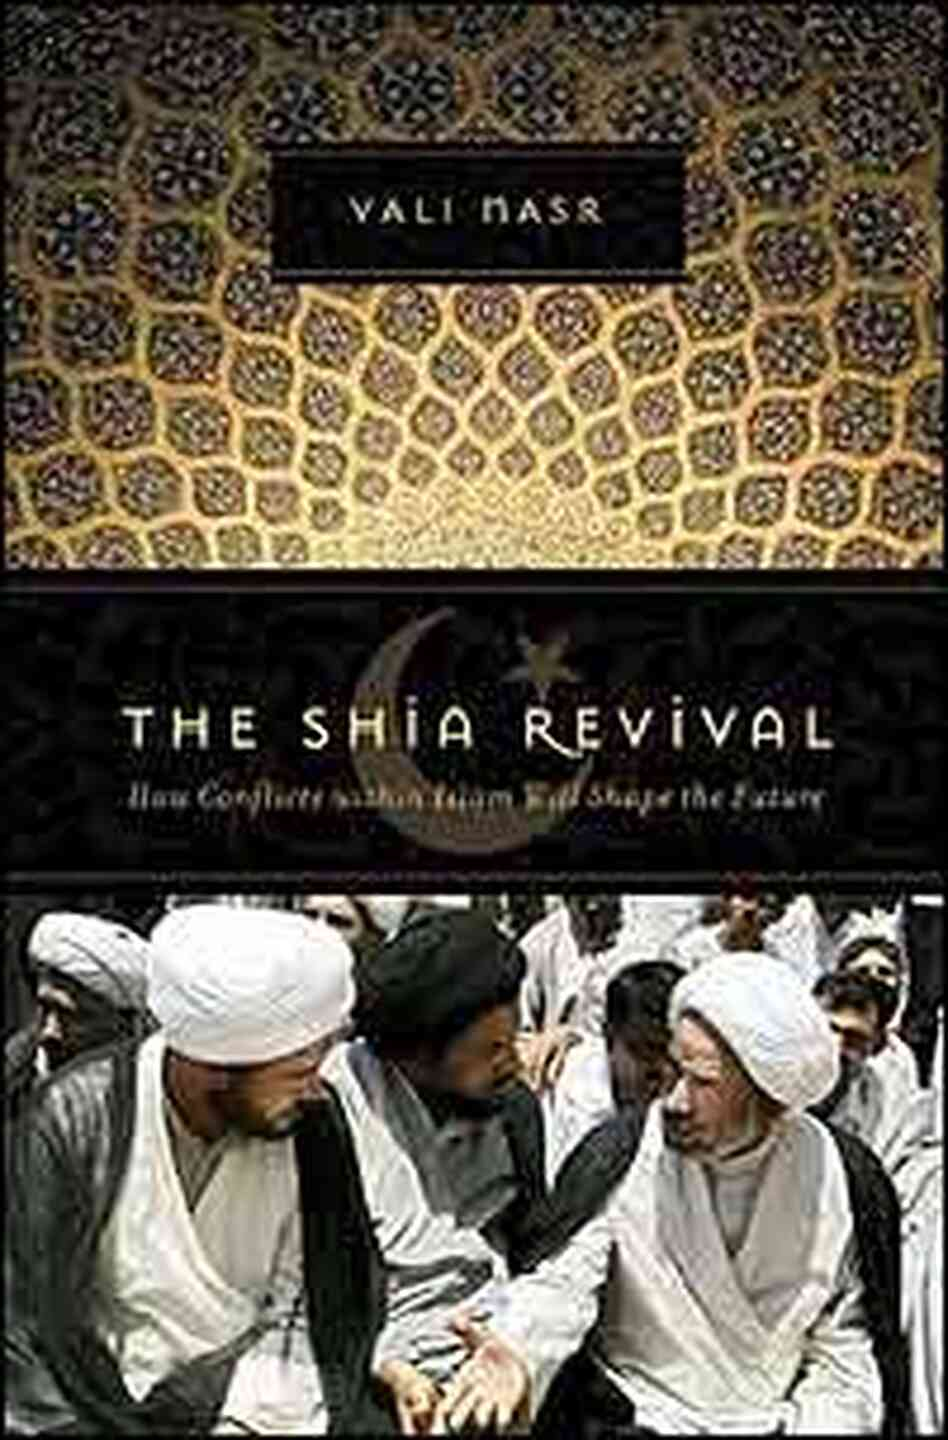 Shia Revival, by Vali Nasr